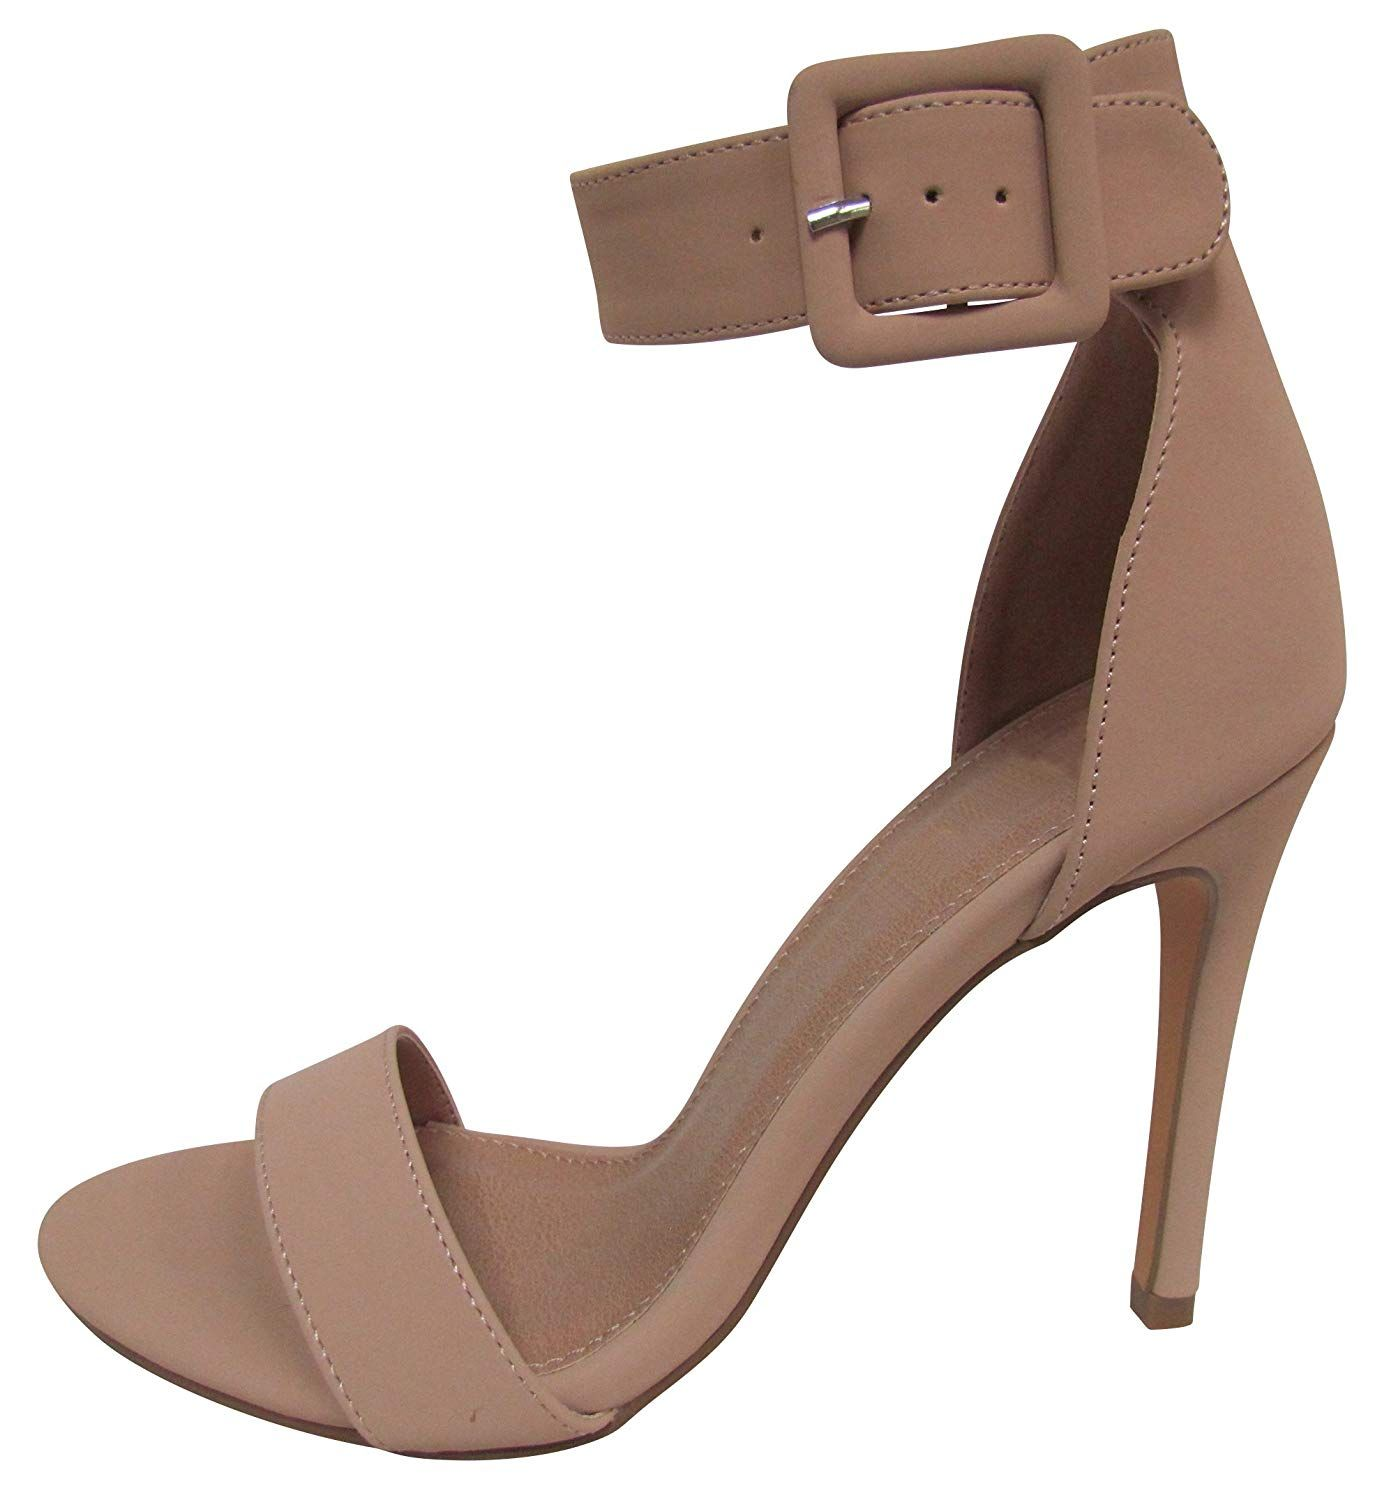 96a04740cb955 Cambridge Select Women's Open Toe Single Band Thick Buckled Ankle ...